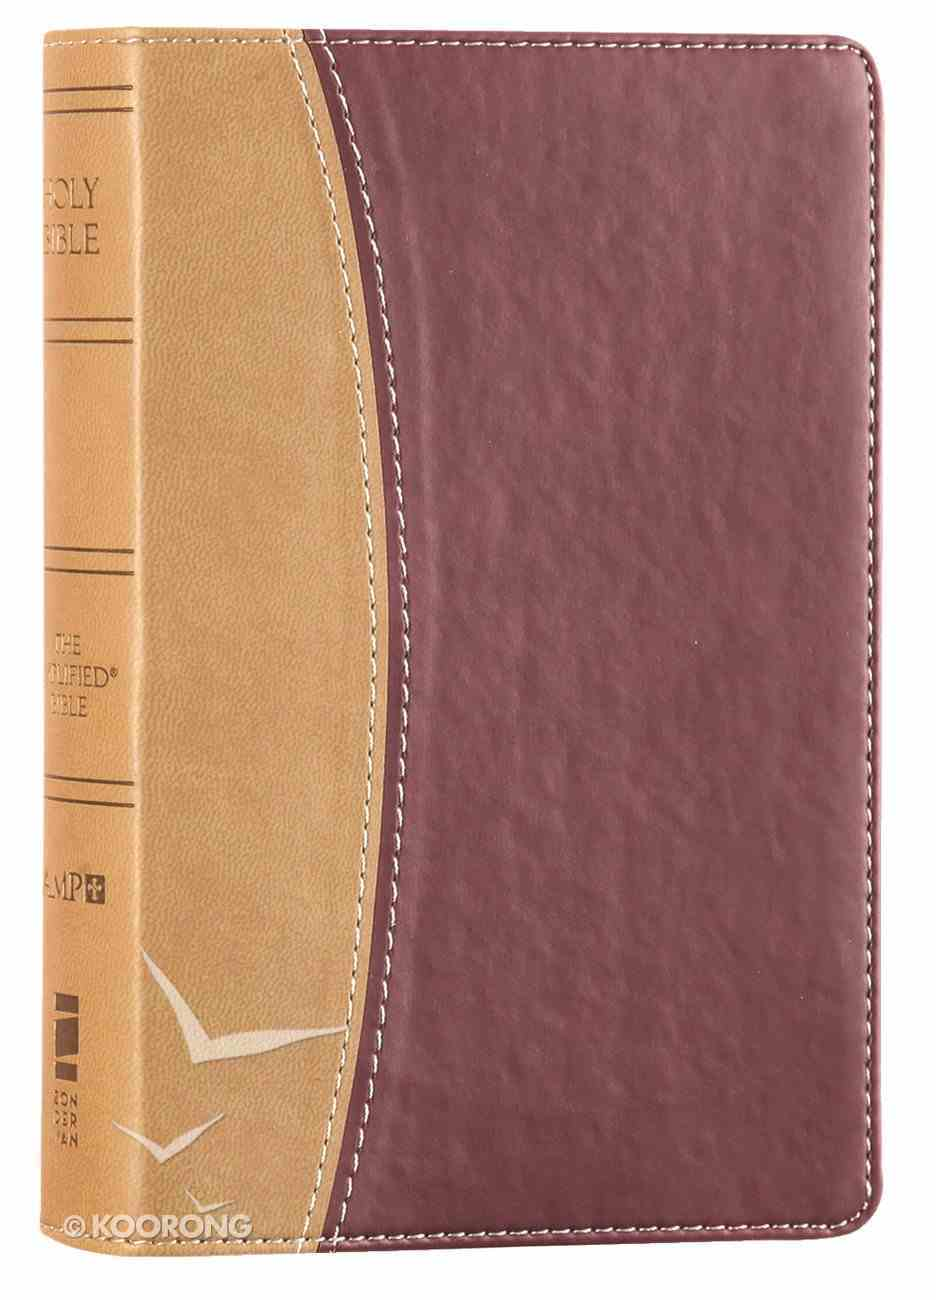 Amplified Holy Bible Compact Camel\Burgundy (Black Letter Edition) Premium Imitation Leather